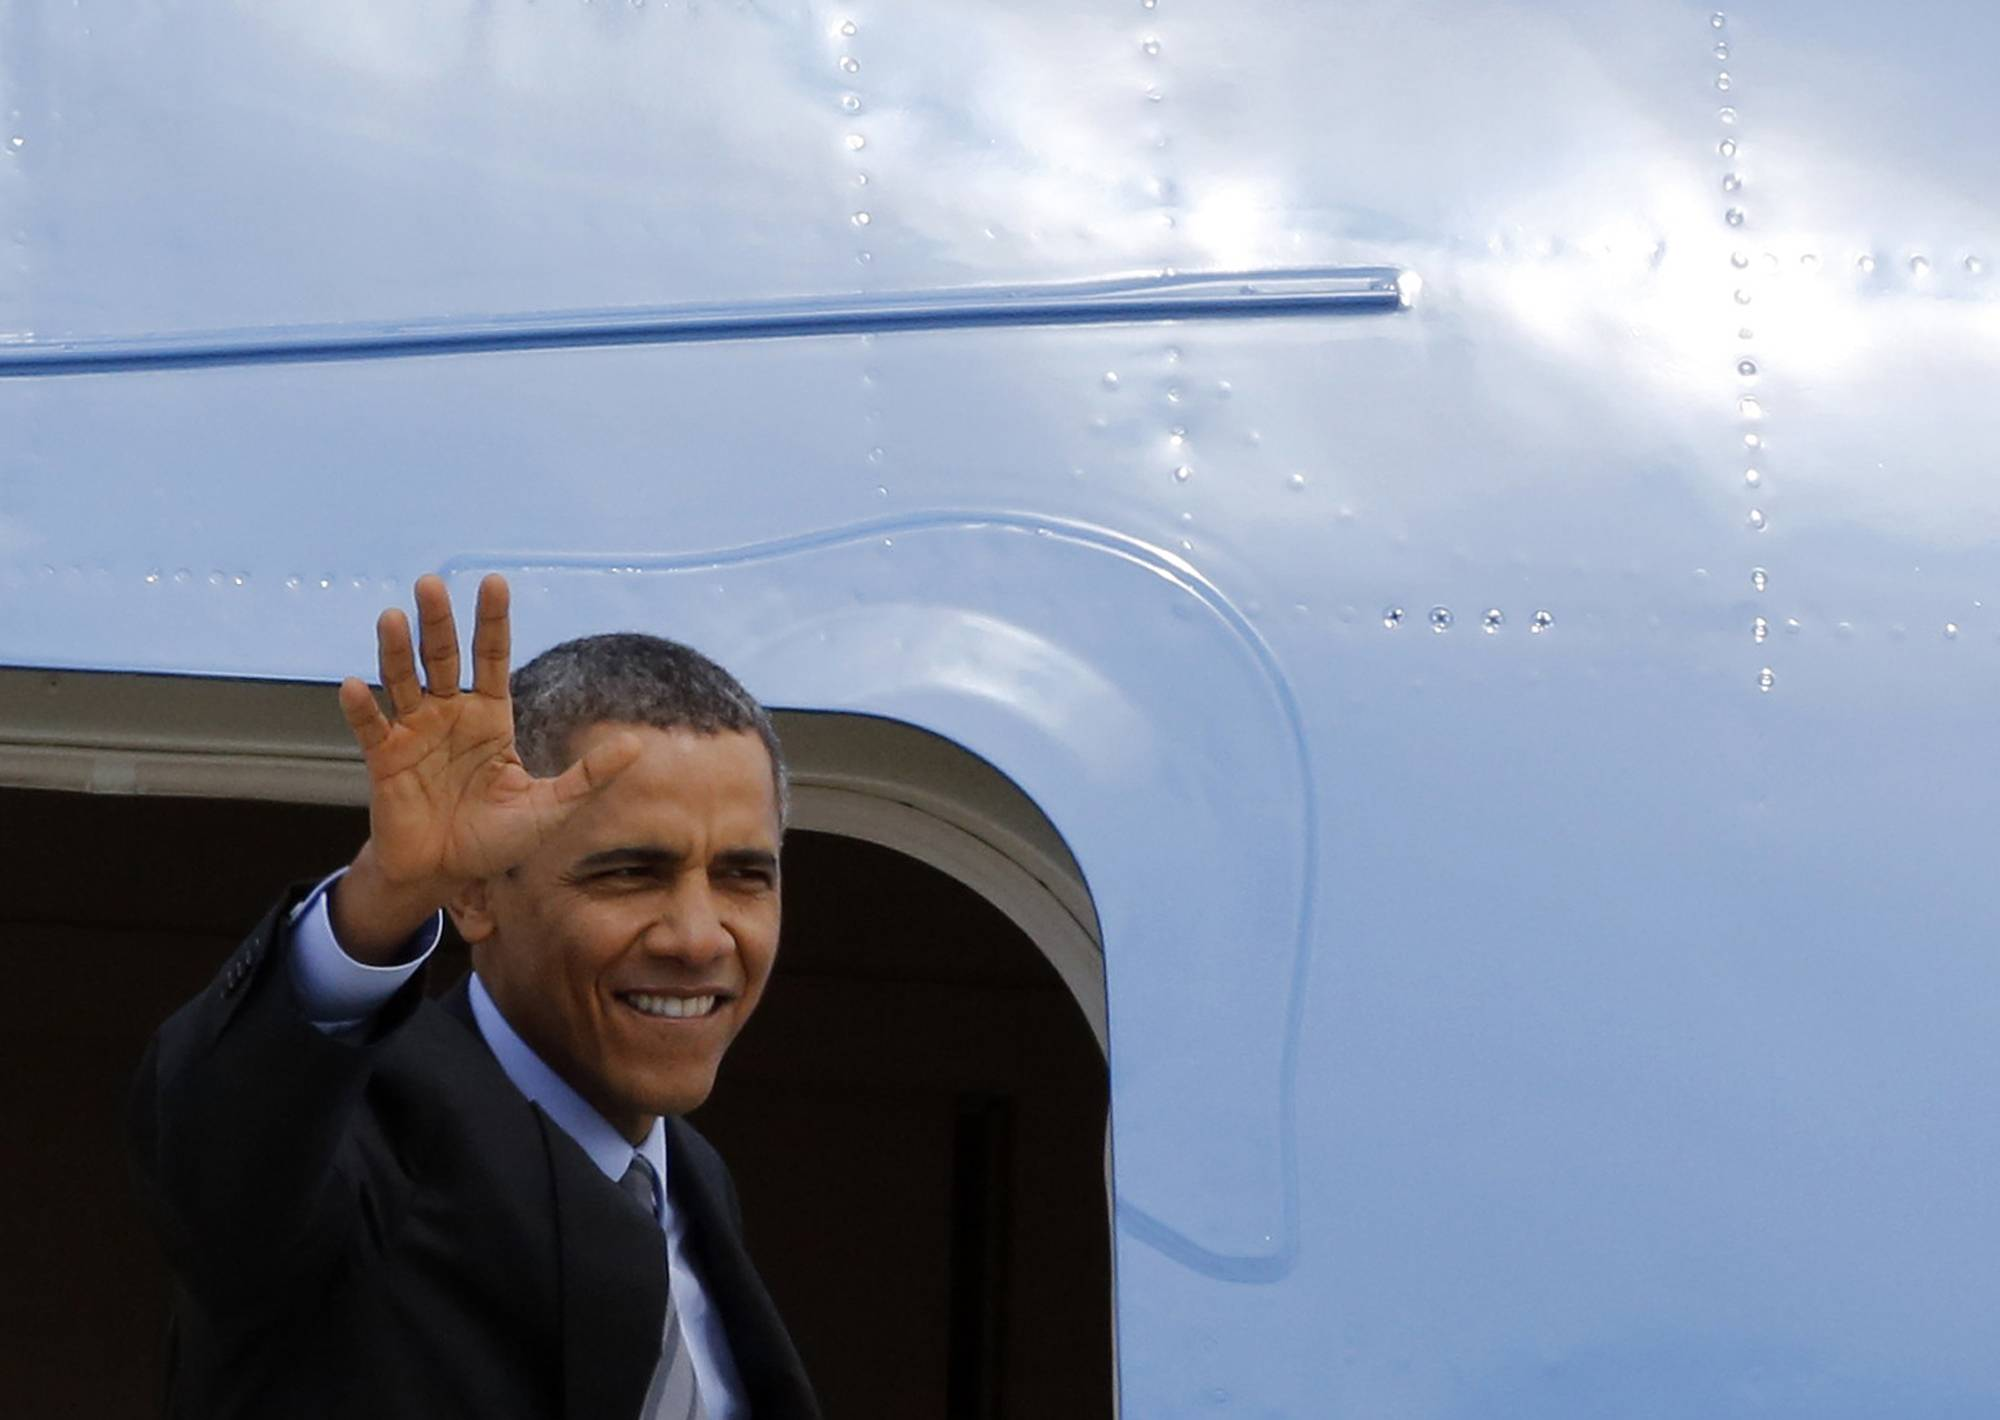 President Barack Obama waves as he boards Air Force One at Fiumicino Airport, Friday, March 28, 2014 in Rome. Obama departs Italy for Saudi Arabia, to meet with King Abdullah, the final stop on a weeklong overseas trip.